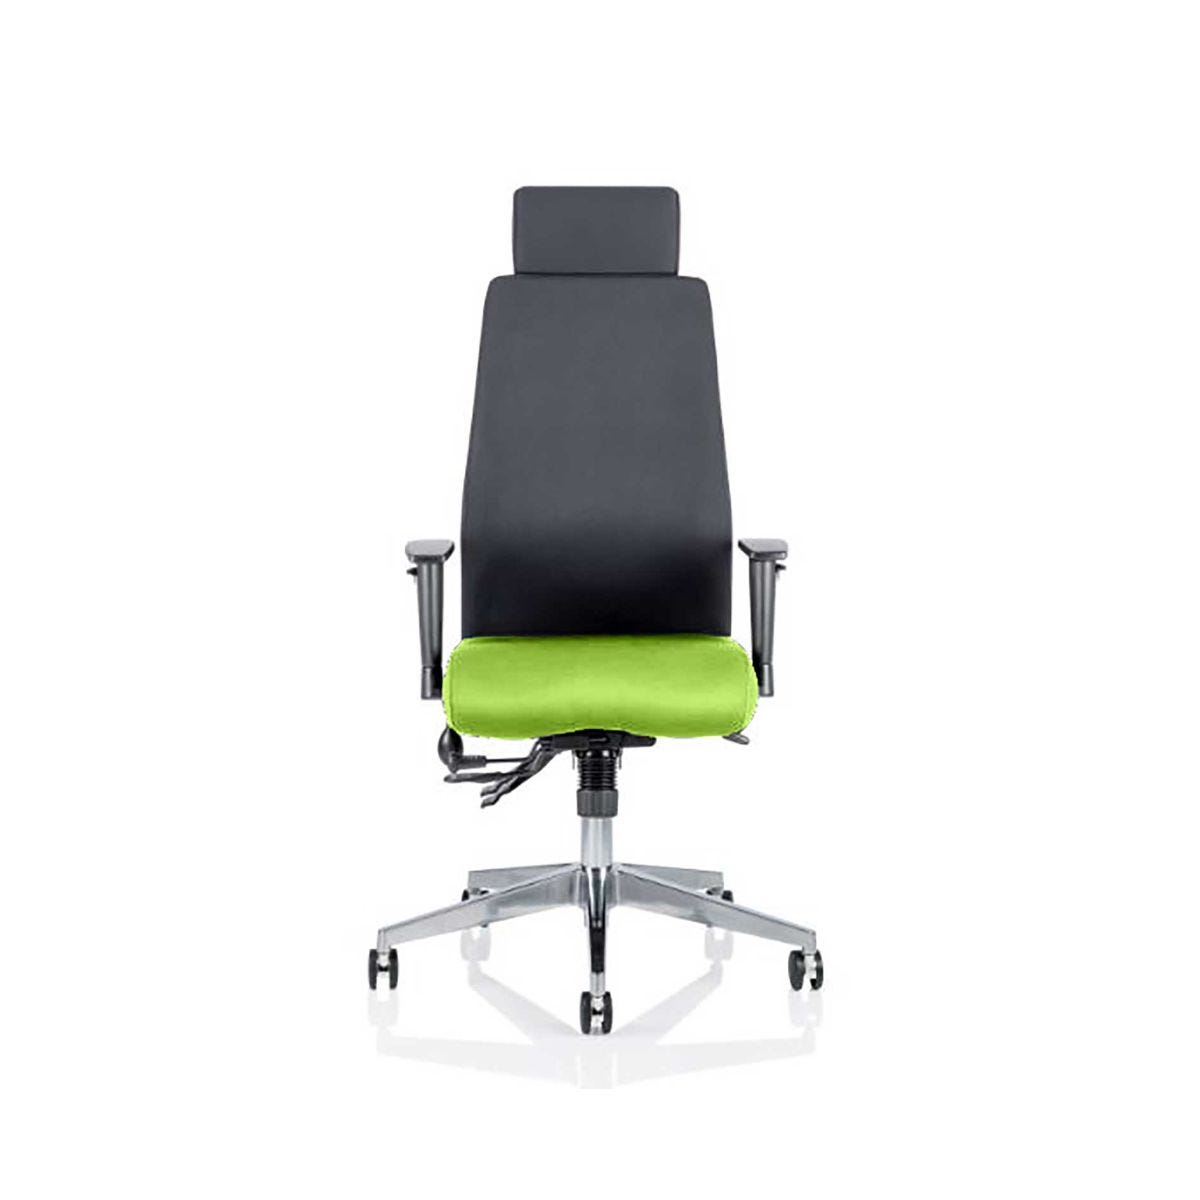 Onyx Office Chair With Headrest, Swizzle